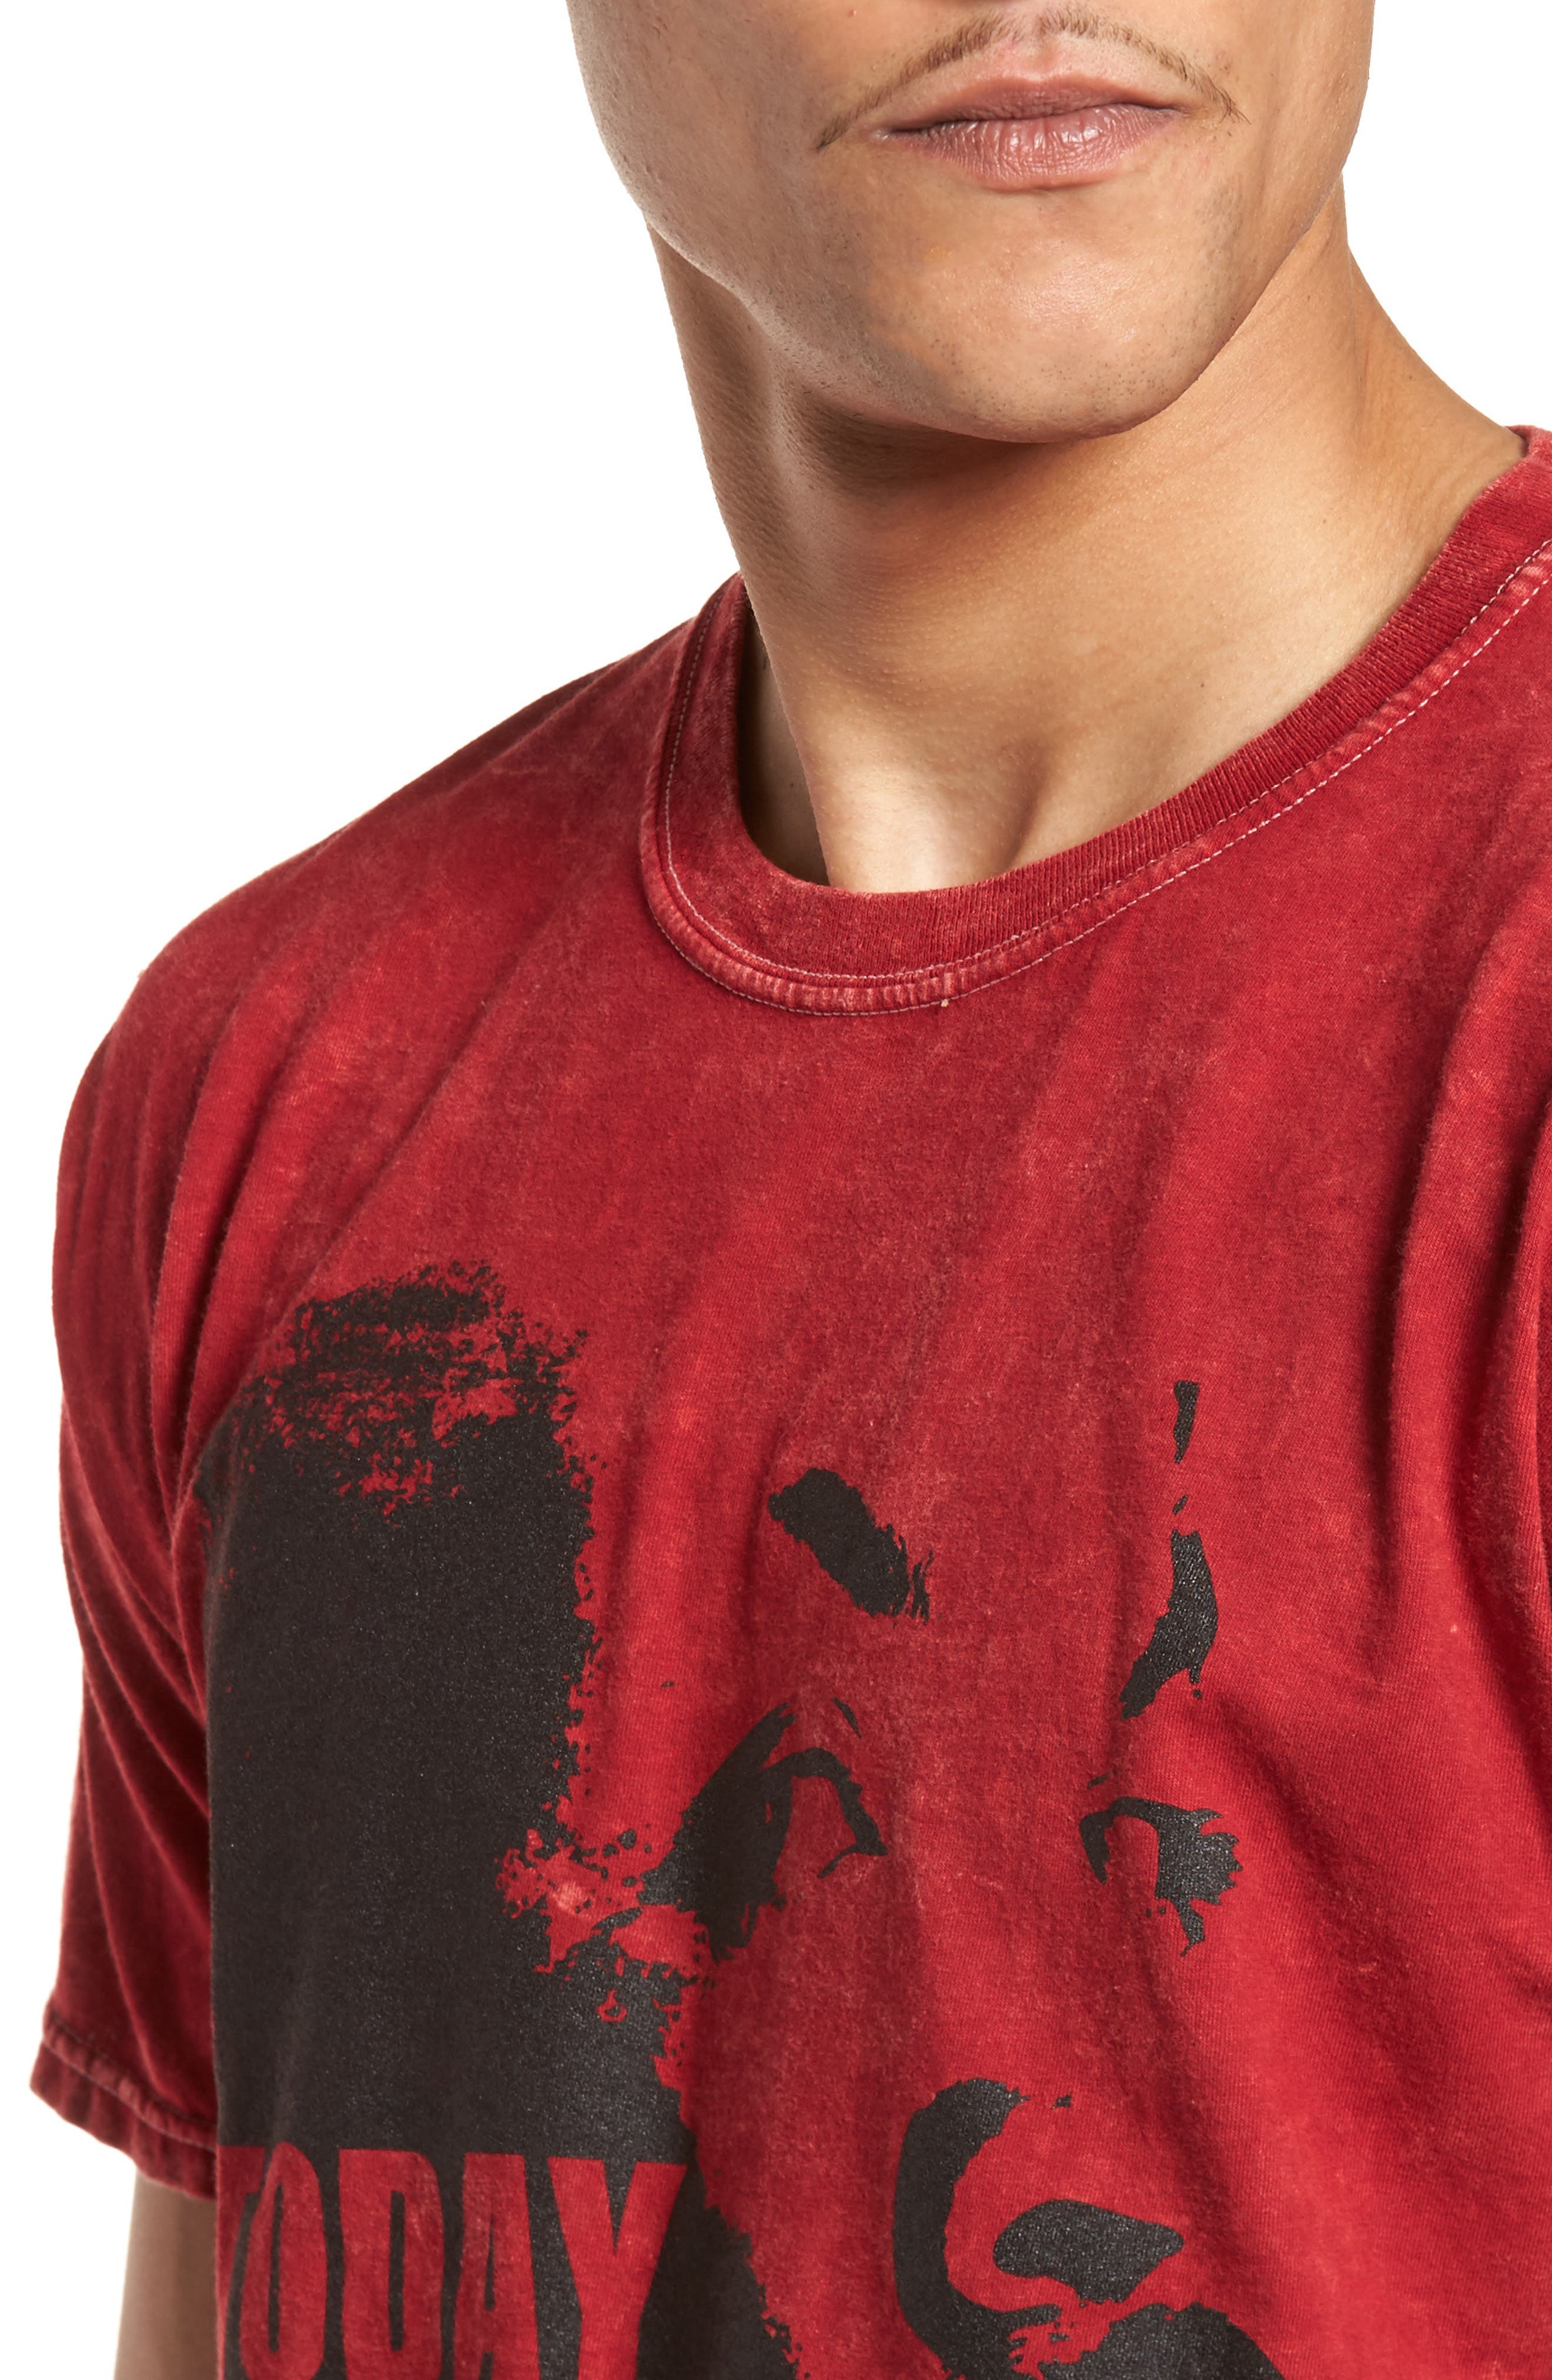 Good Day Graphic T-Shirt,                             Alternate thumbnail 4, color,                             610